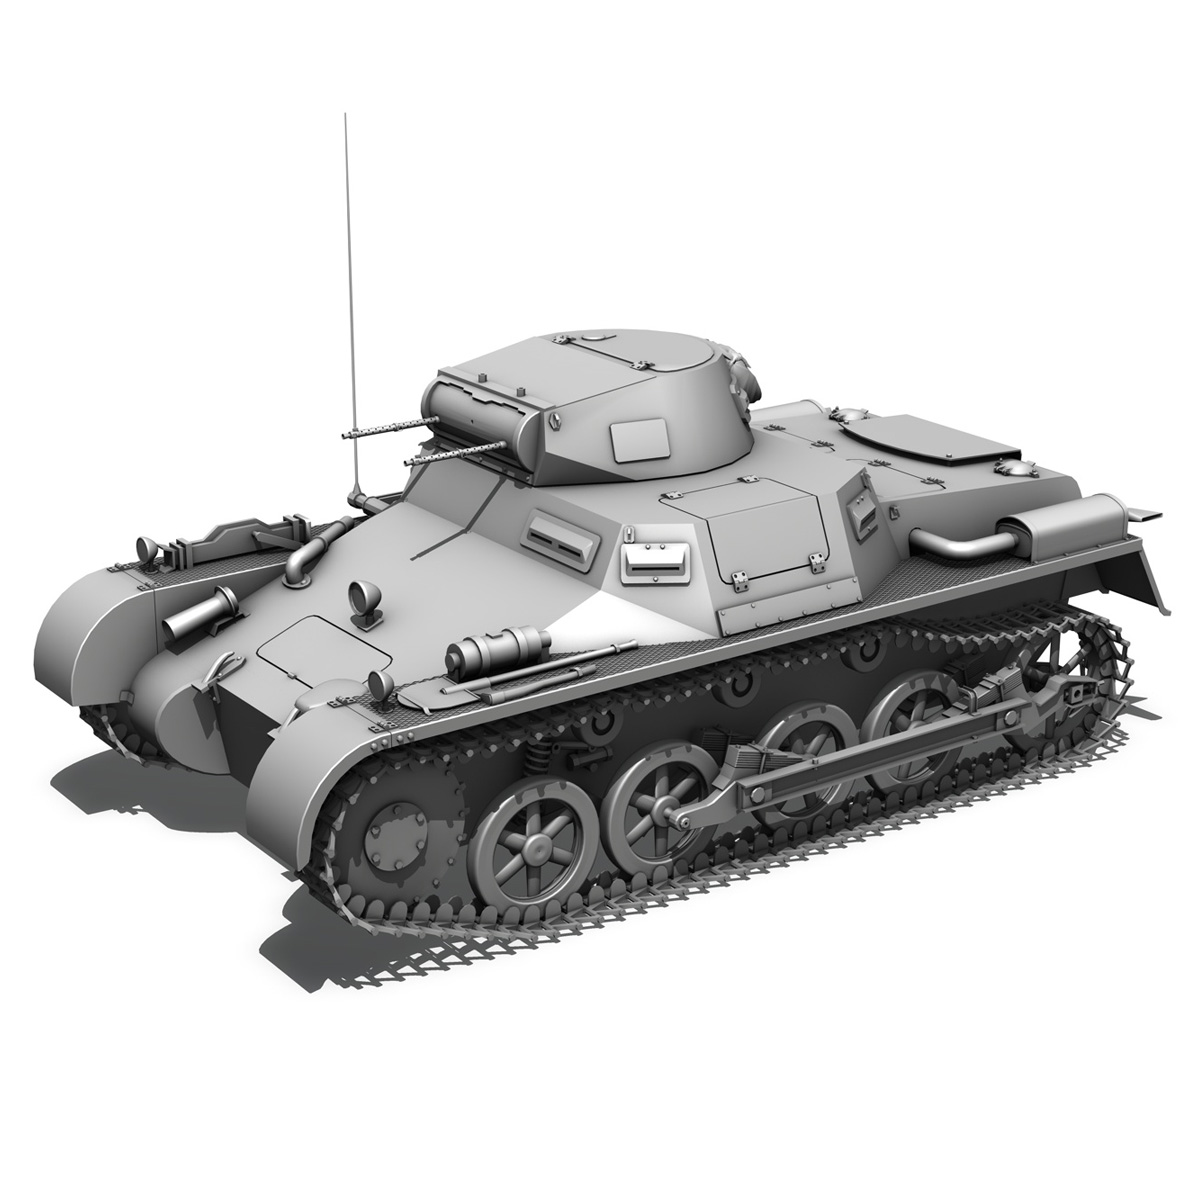 panzerkampfwagen 1 – panzer 1 collection 3d model 3ds fbx c4d lwo obj 189343